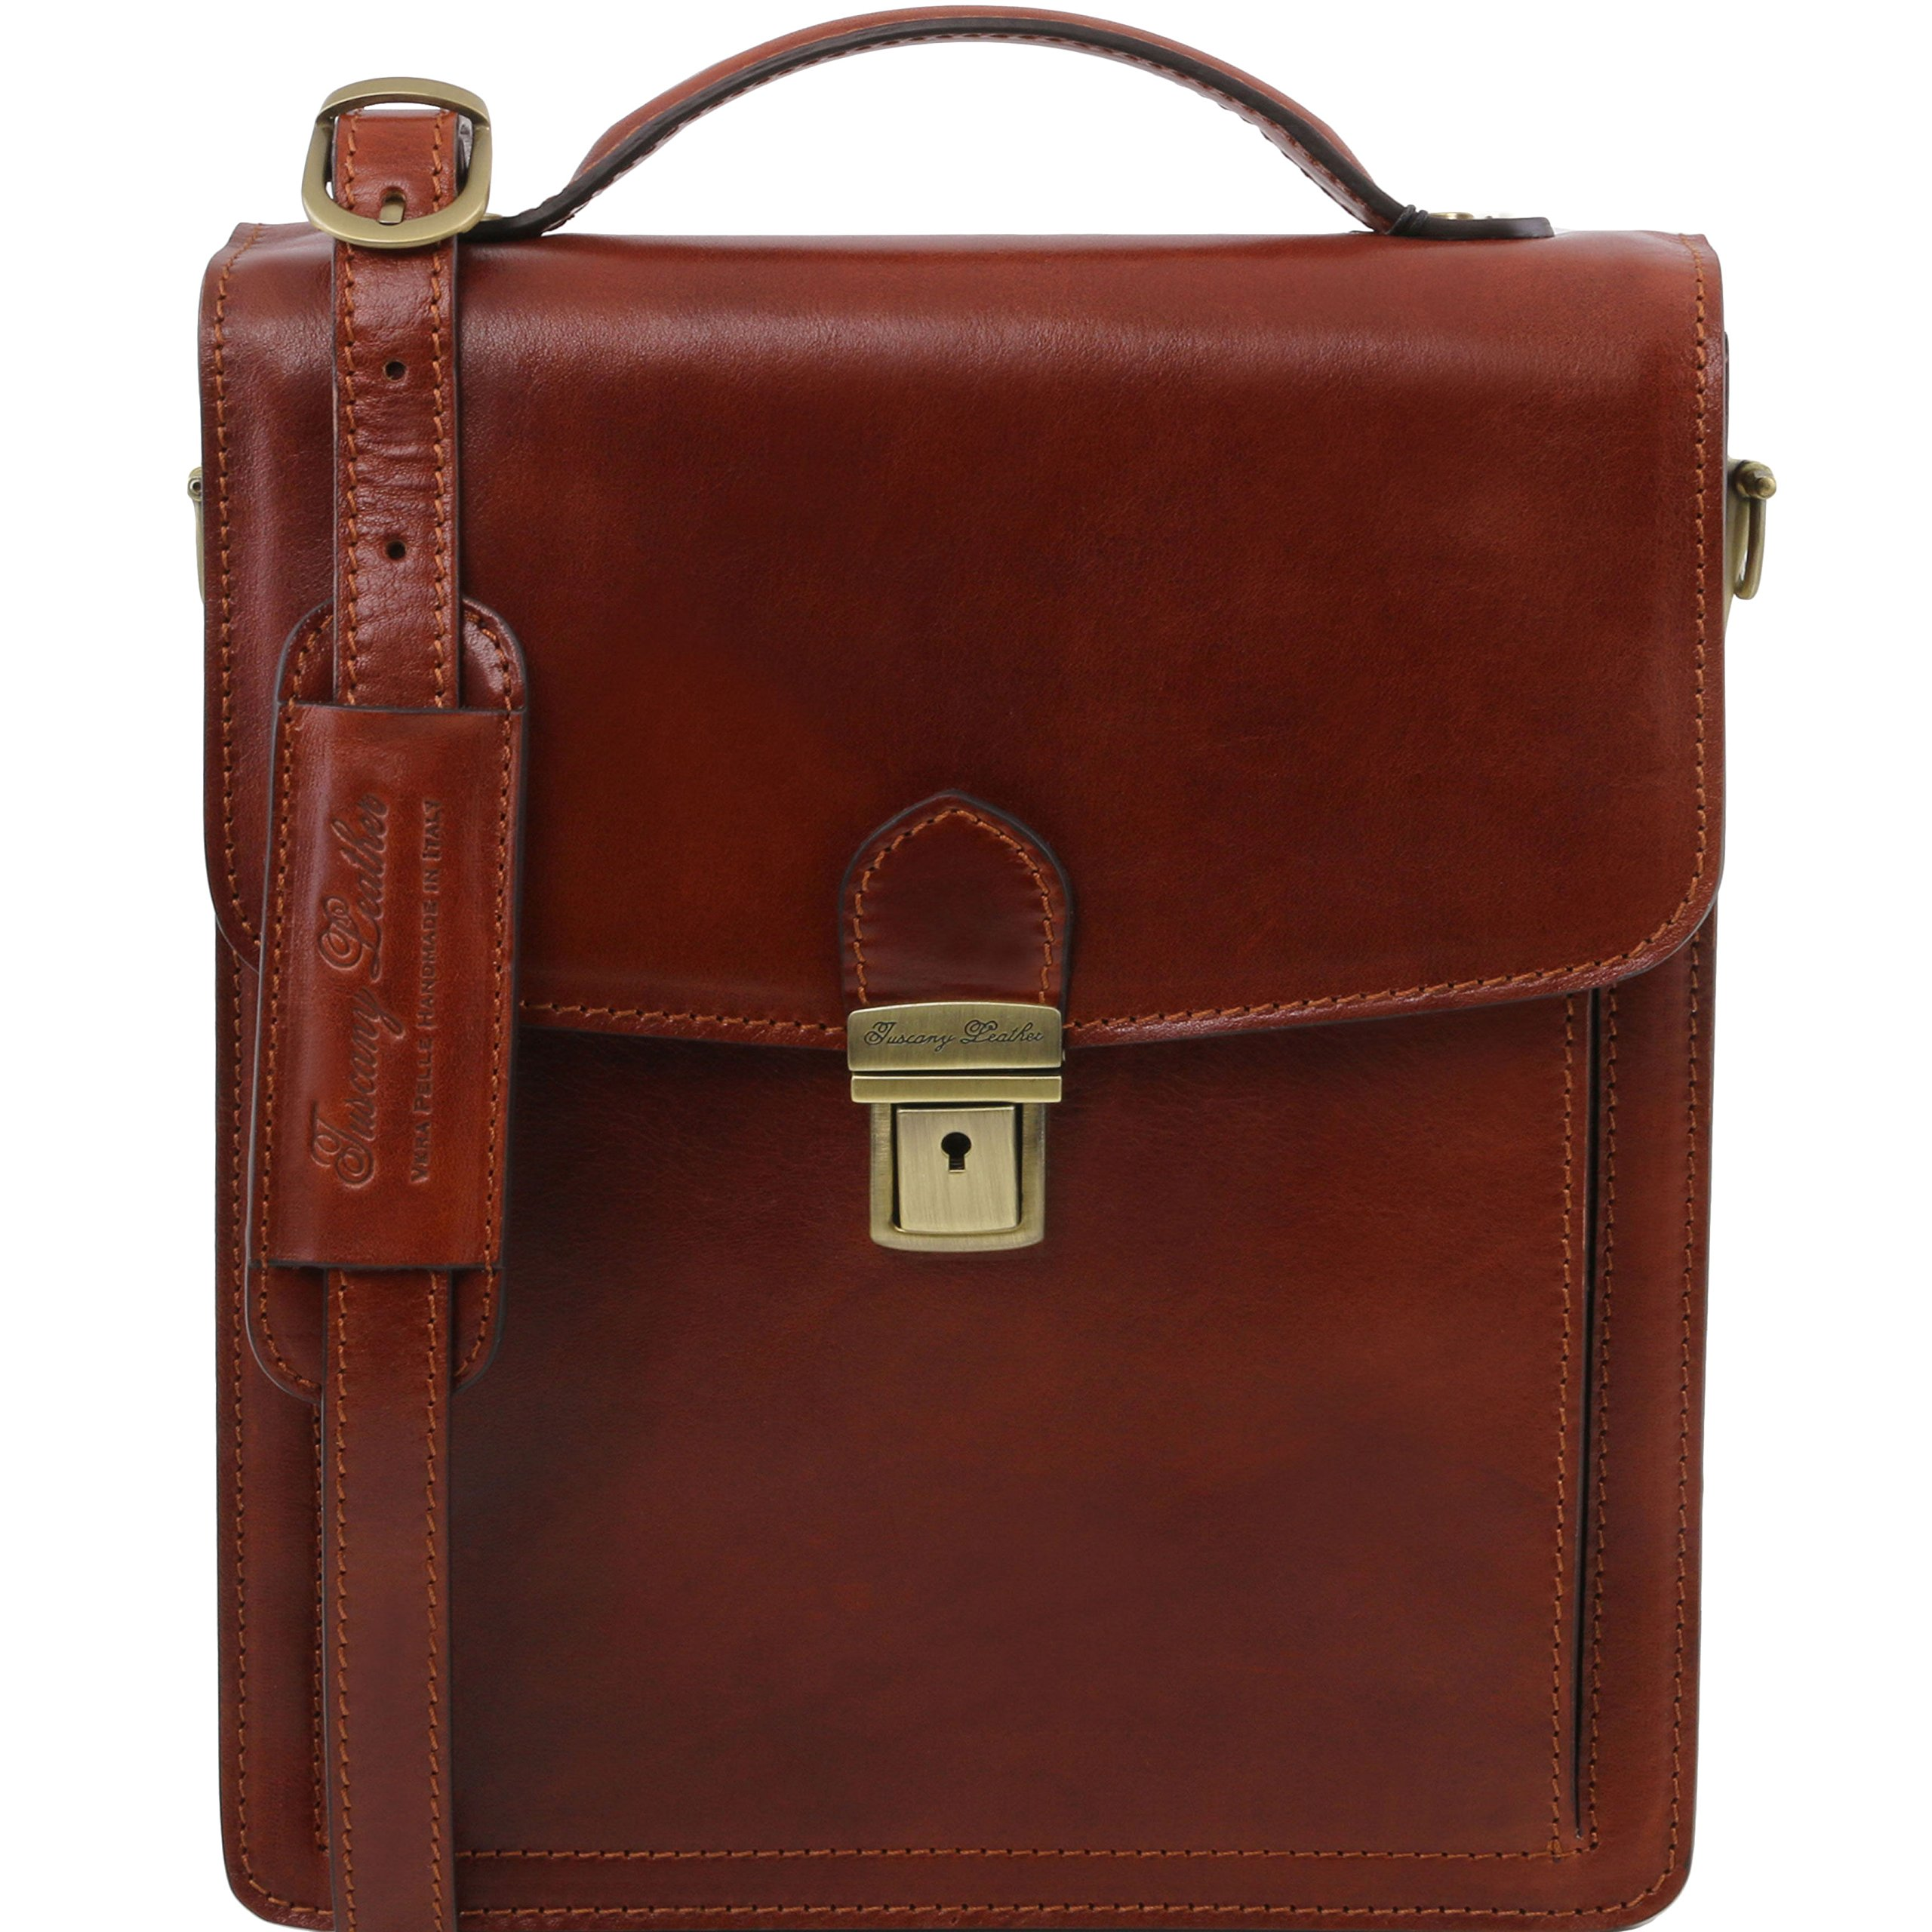 Tuscany Leather David Leather Crossbody Bag - large size Brown